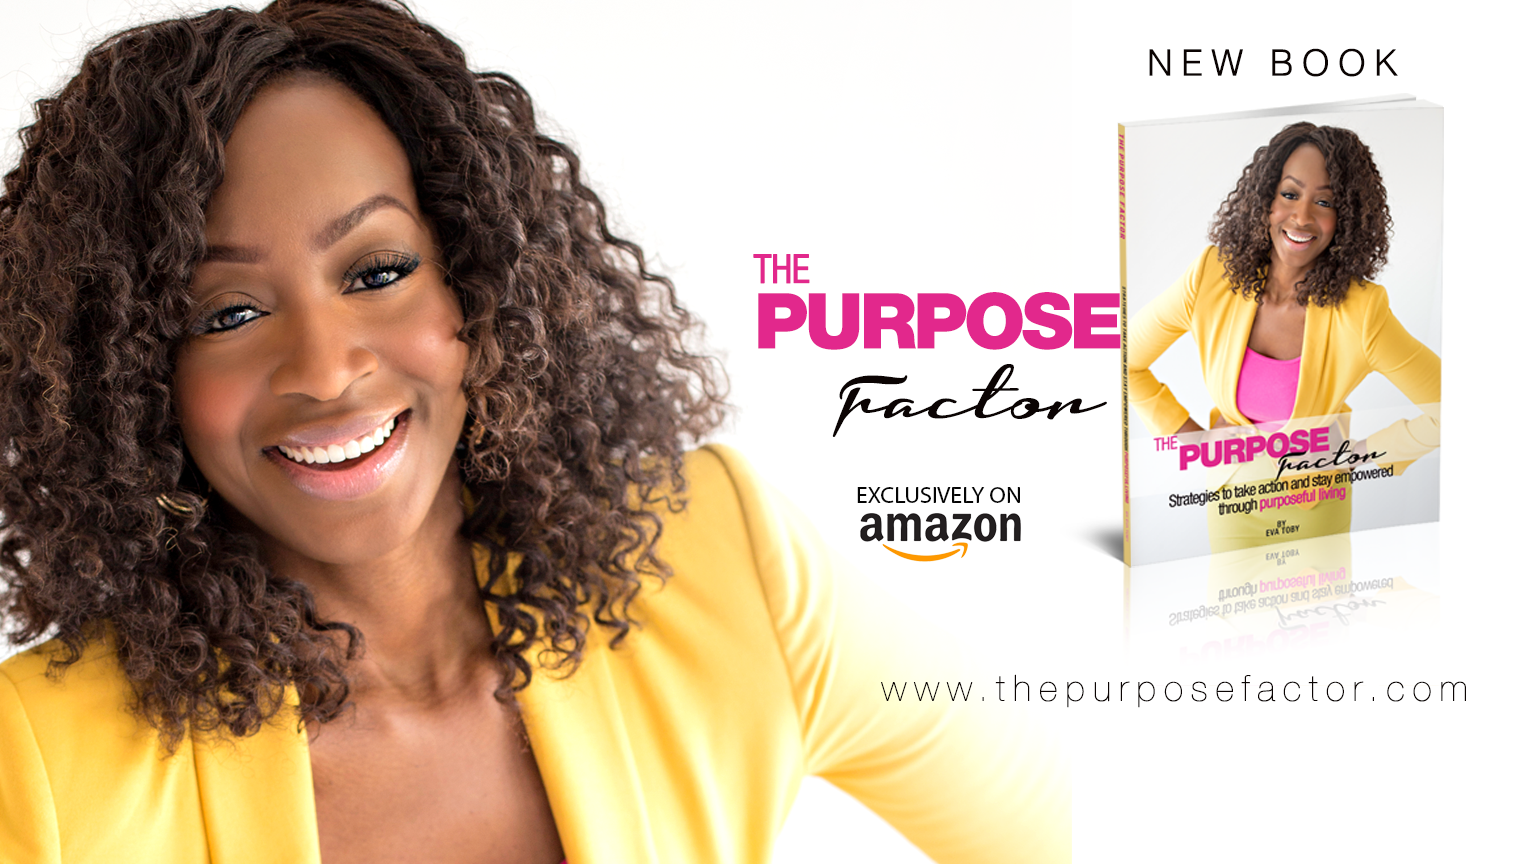 THE PURPOSE FACTOR!! Now Available for Pre-Order